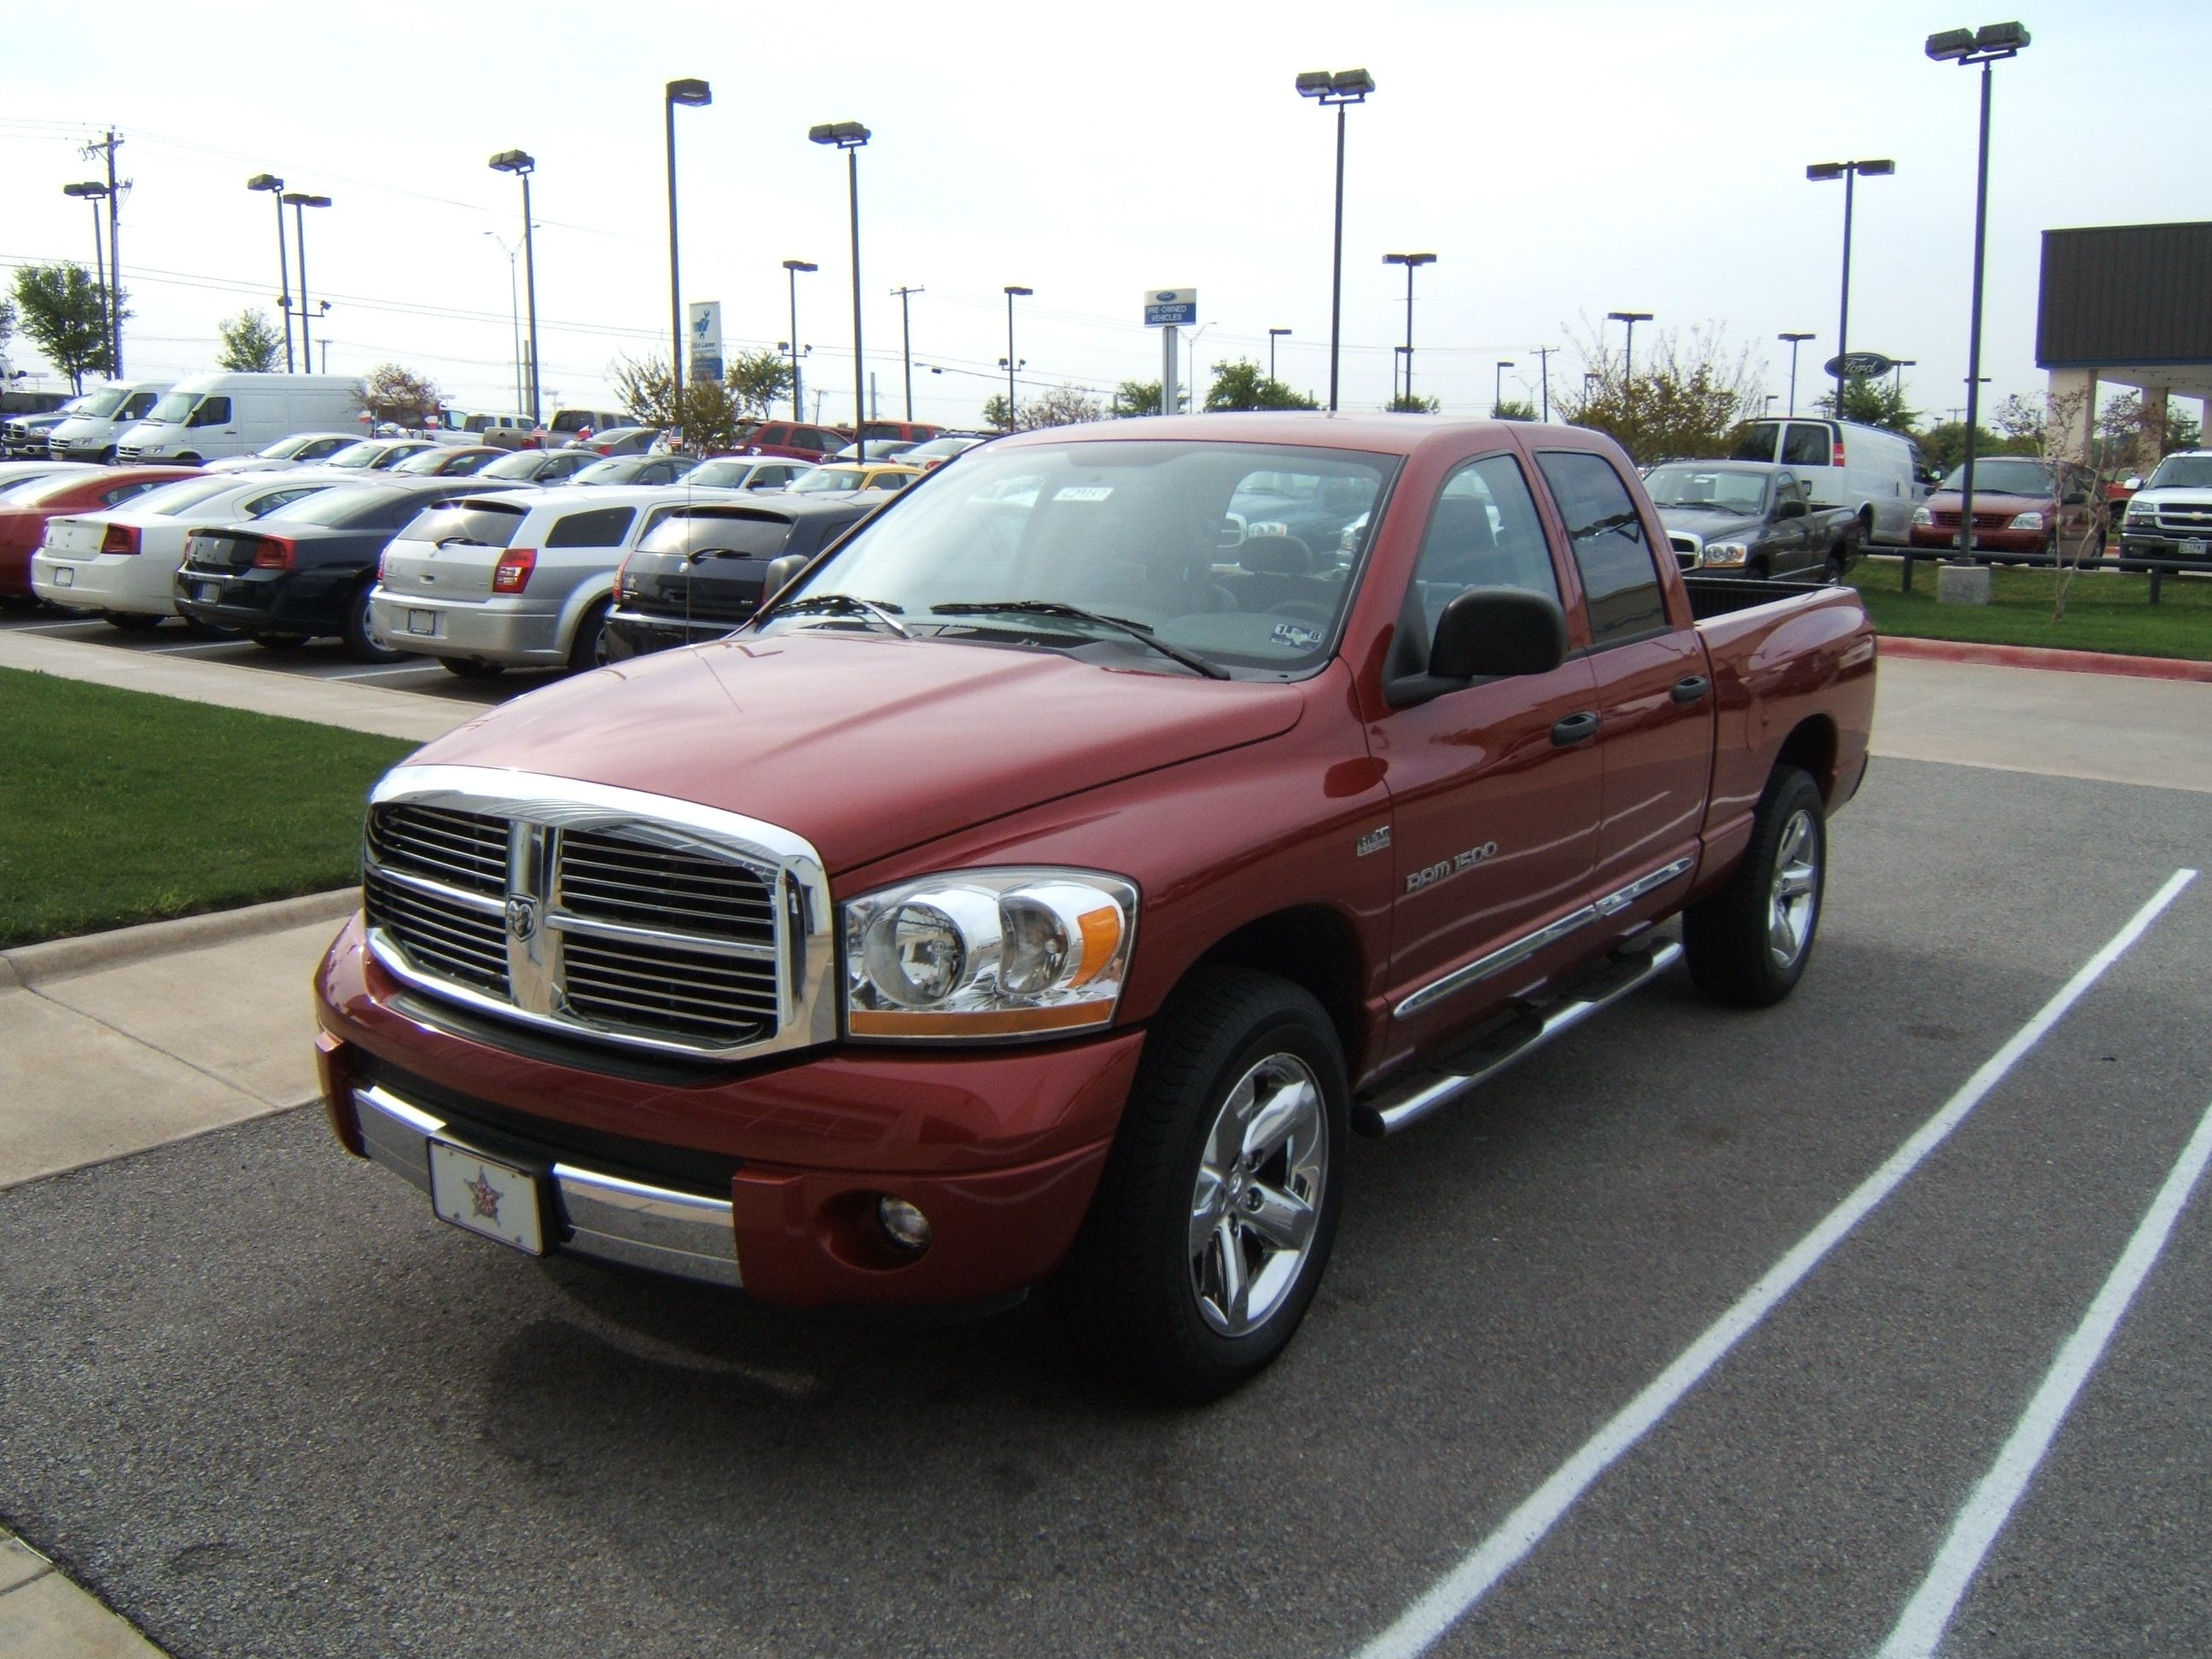 Dodge Ram TRucks red in colour Dodge Trucks Pinterest